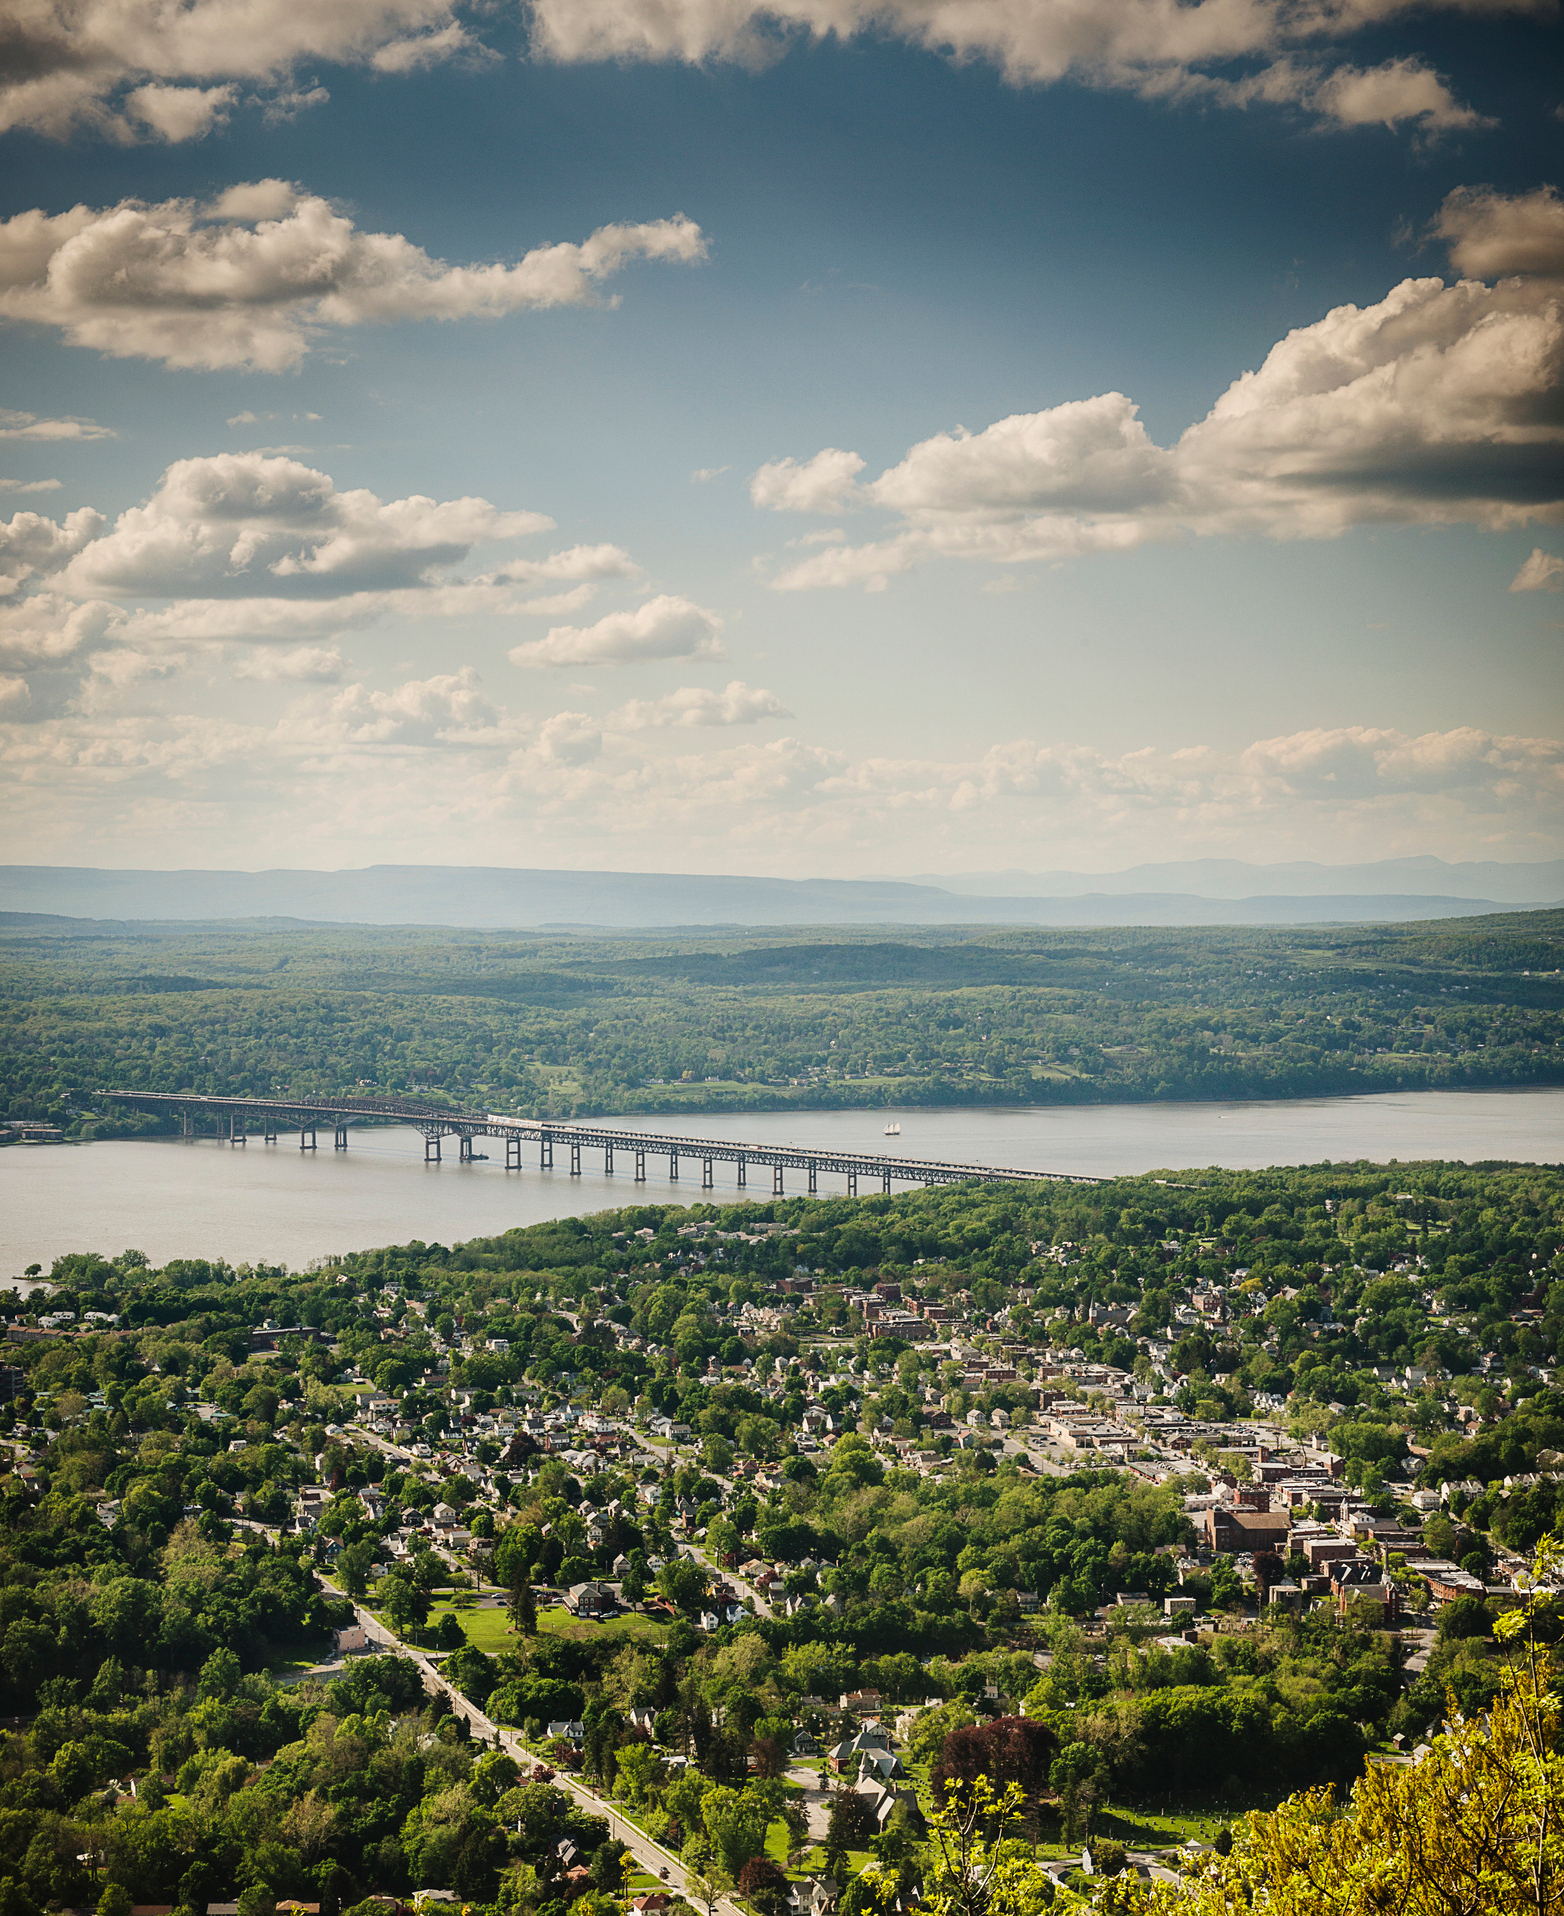 USA: Day trip from New York to Beacon for a breath of fresh air